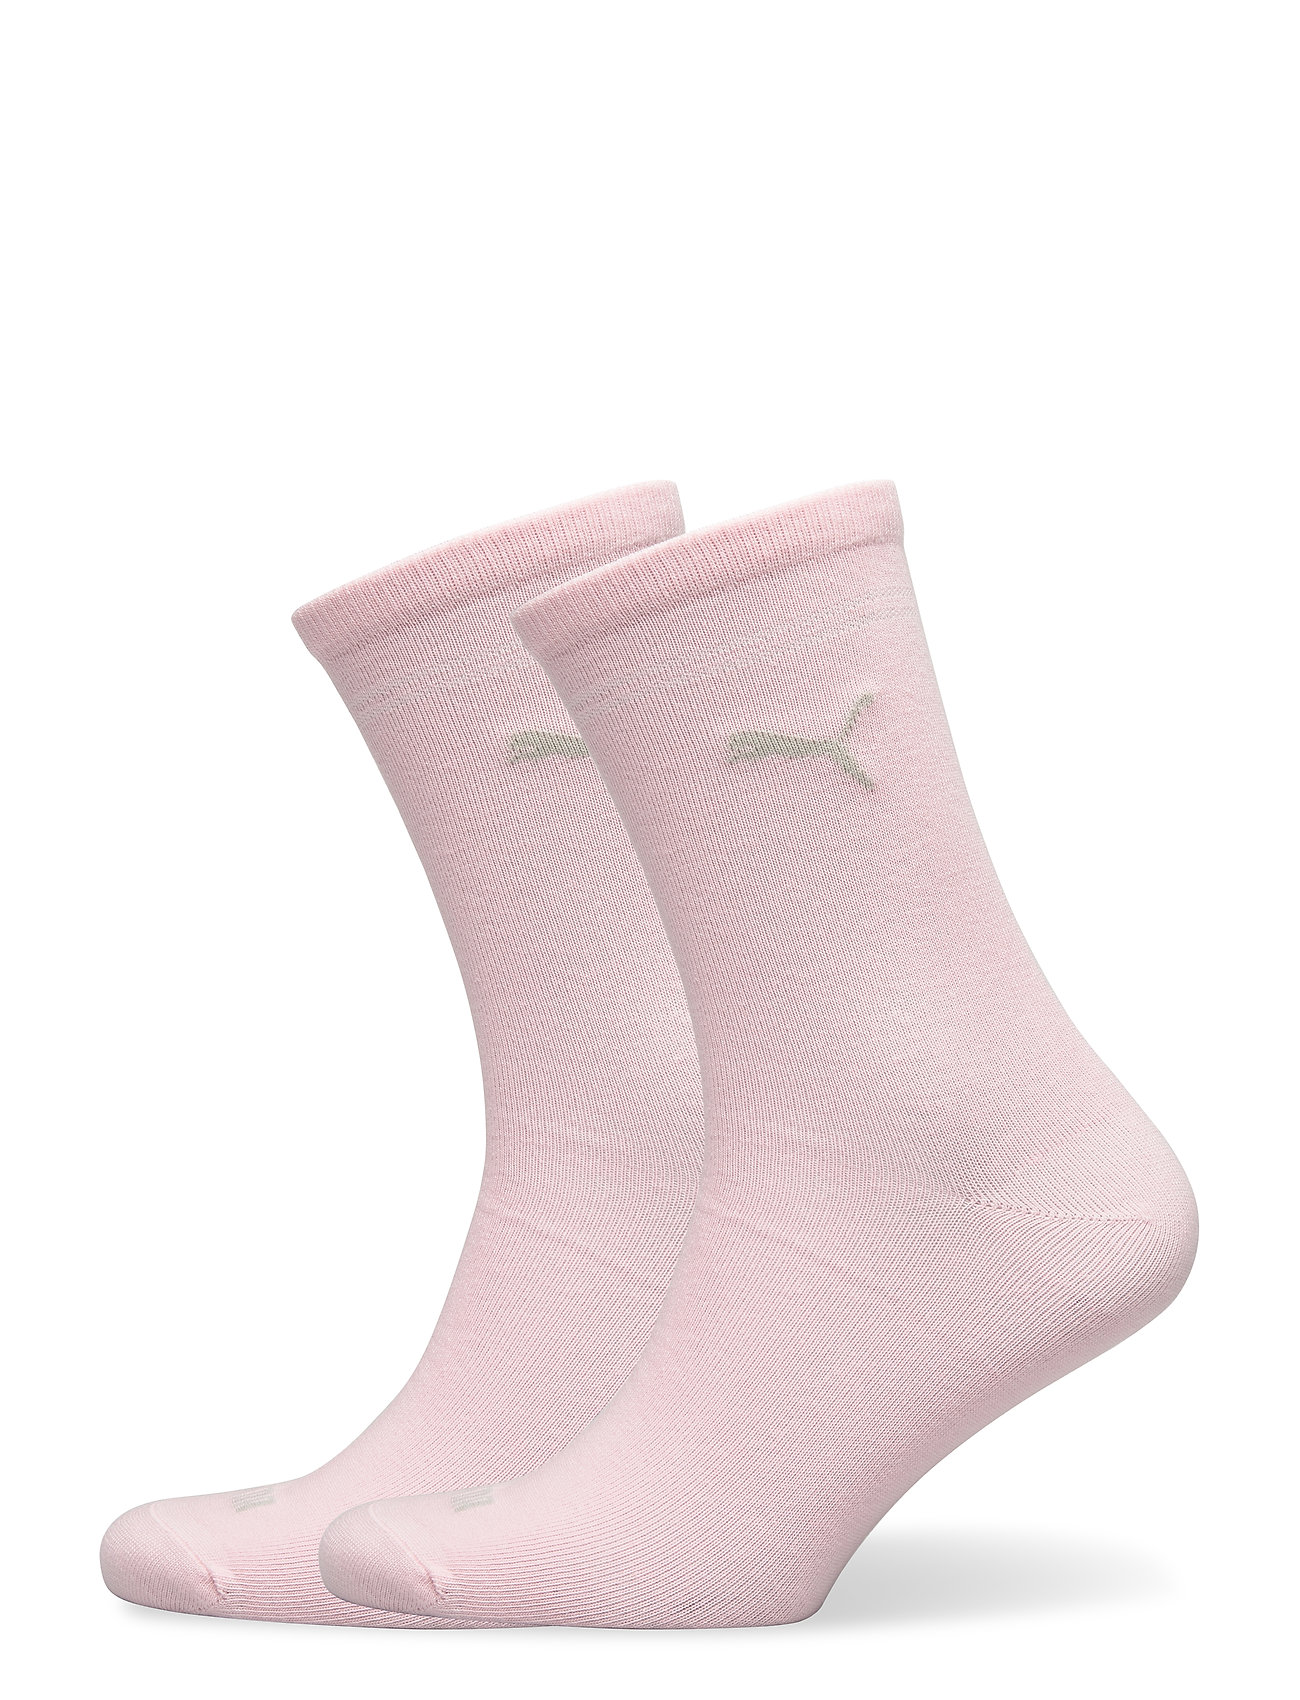 Image of Puma Women Sock 2p Lingerie Socks Regular Socks Lyserød PUMA (3515480533)